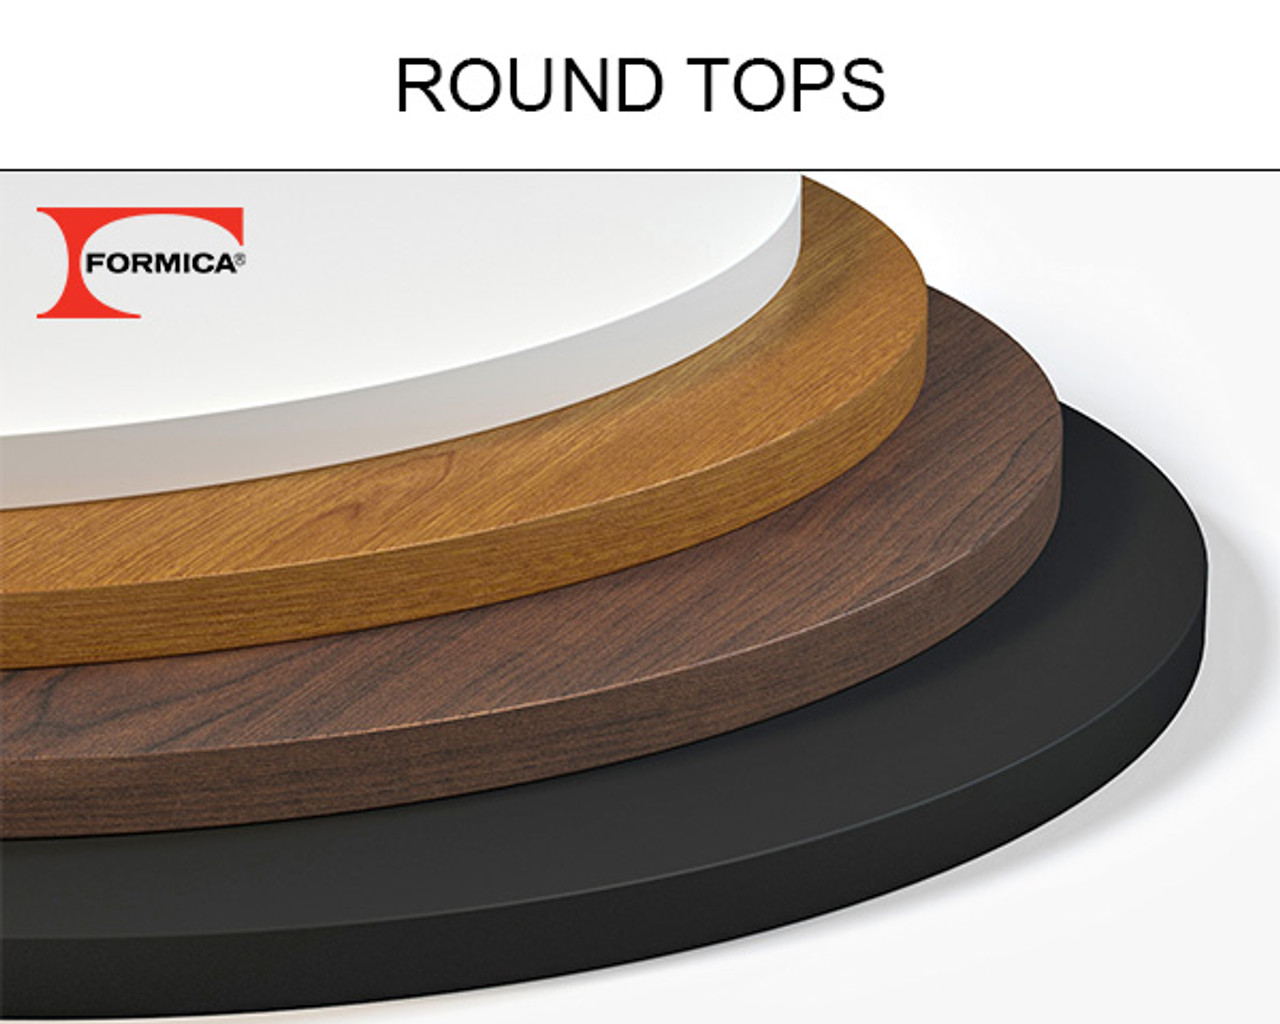 Round Table Tops Formica Round Table Top Many Sizes Available Handcrafted In Usa